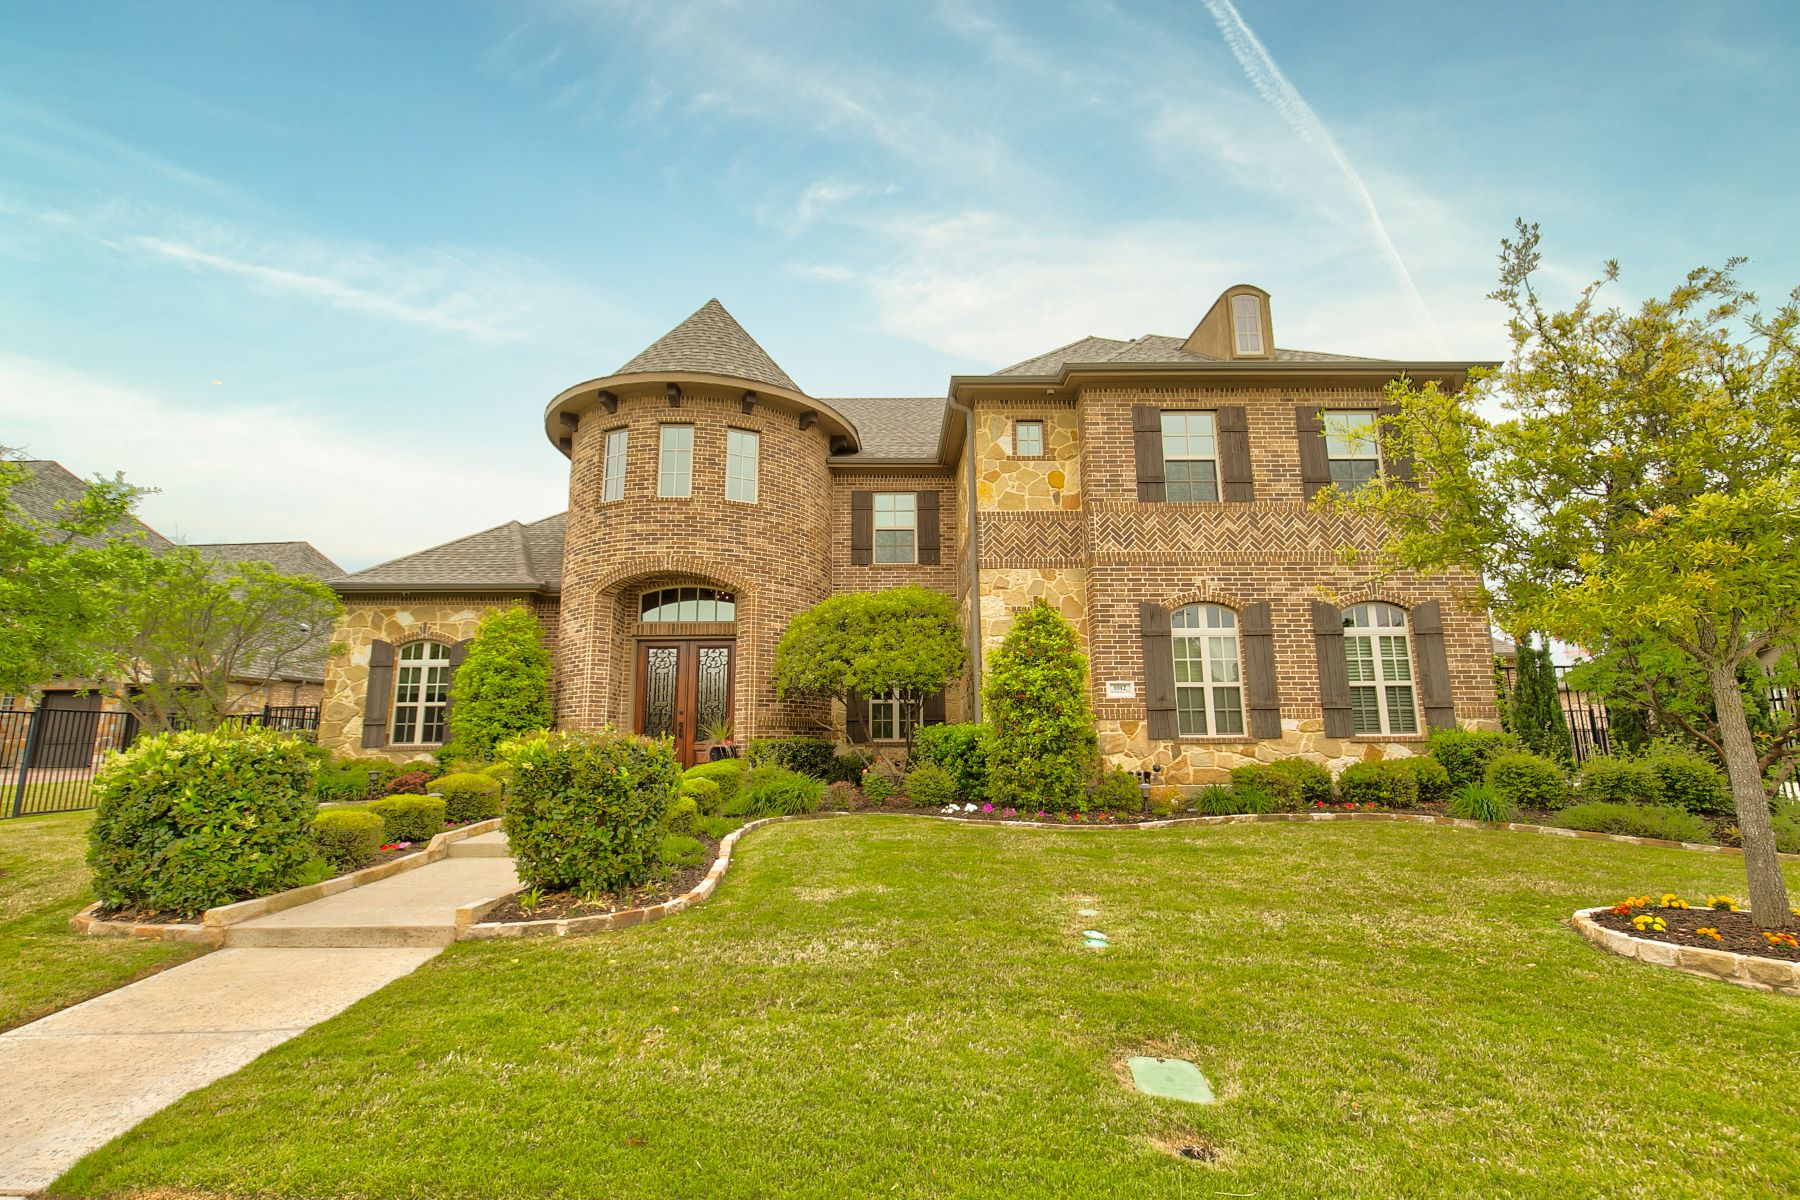 Single Family Homes for Sale at Southlake Sunsets by the Pool 1012 Whittington Place Southlake, Texas 76092 United States